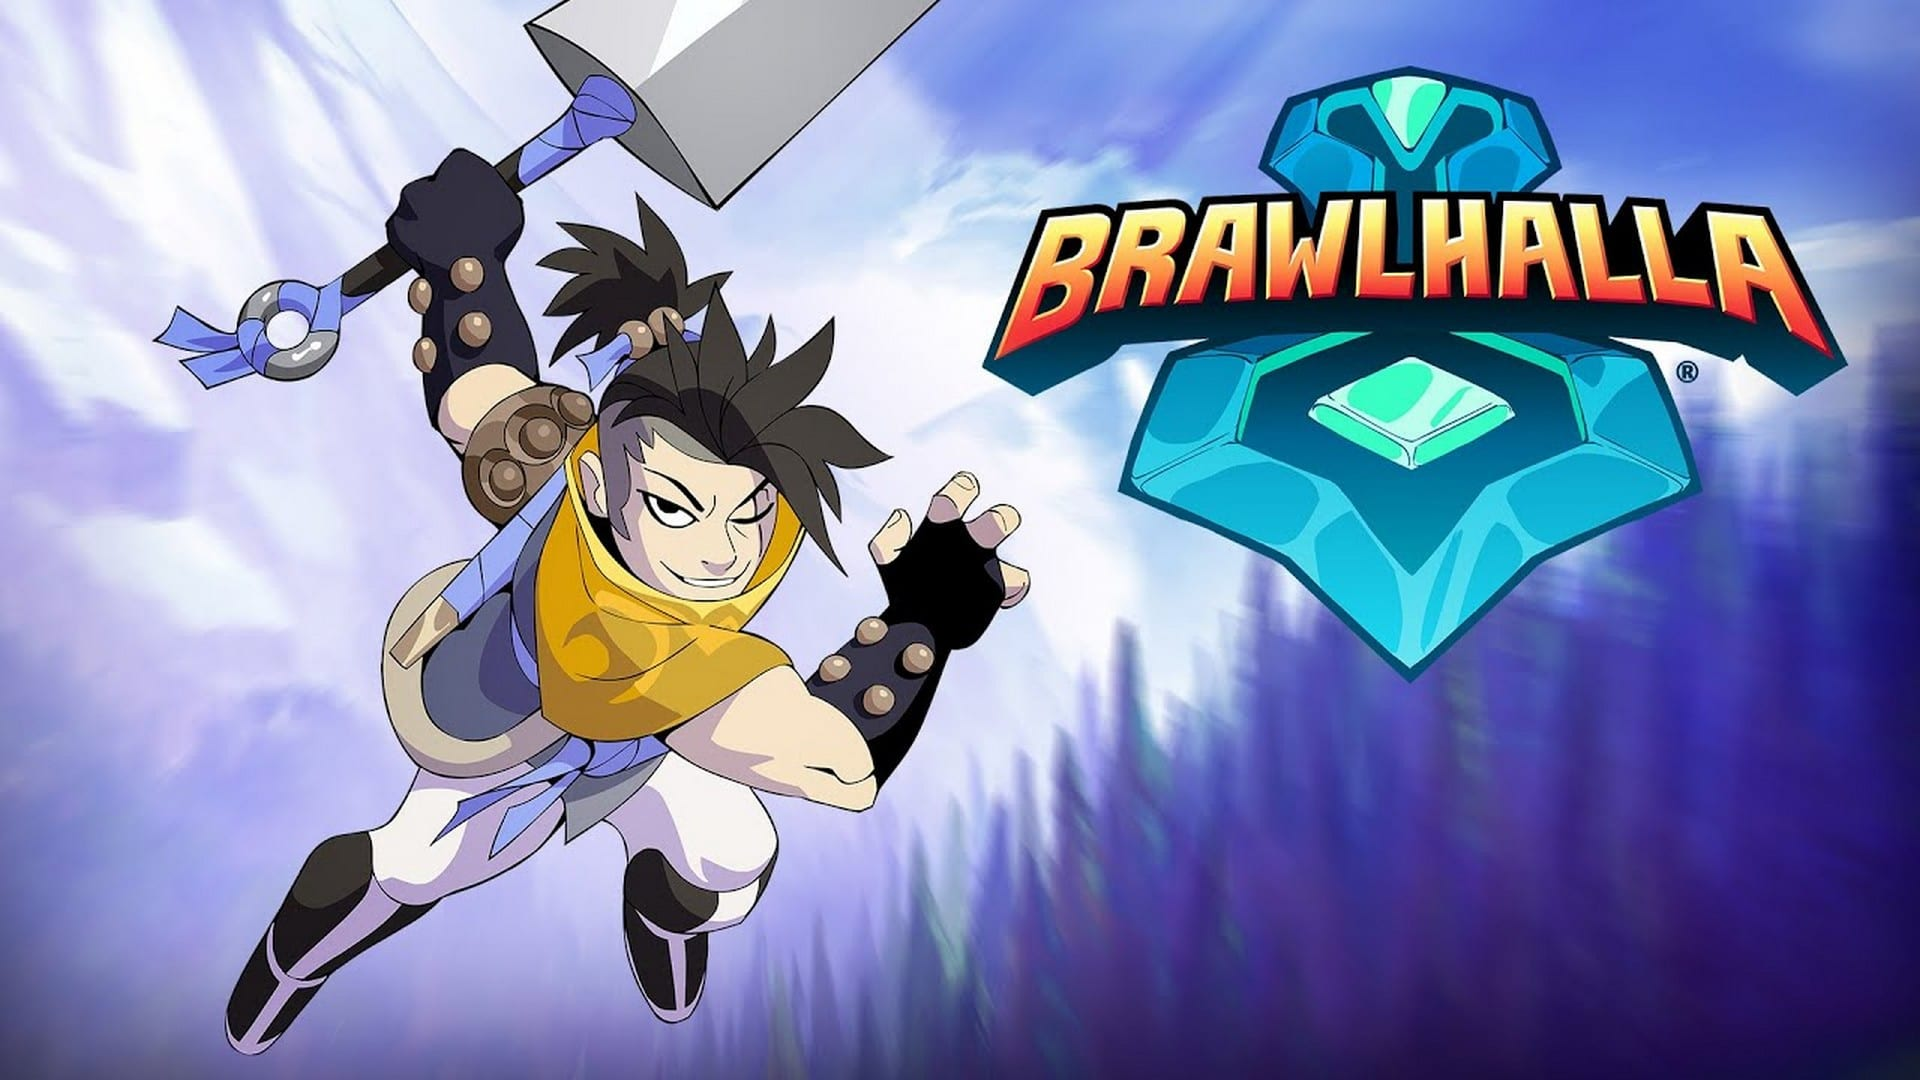 Sellsword Jaeyun Joins BRAWLHALLA as 50th Legend – Available Now